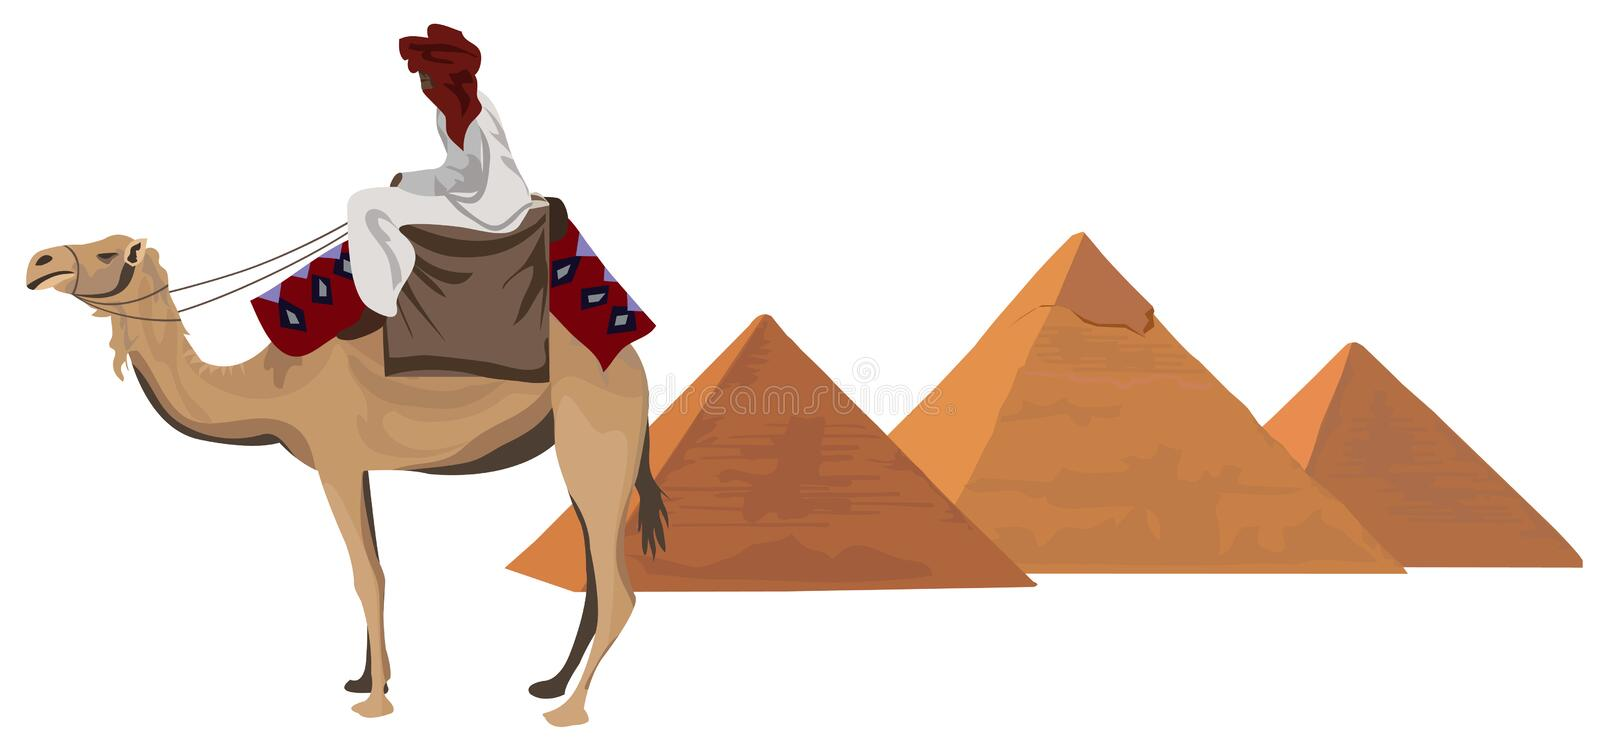 Bedouin and the Pyramids. Illustration with a bedouin and the pyramids of Giza royalty free illustration